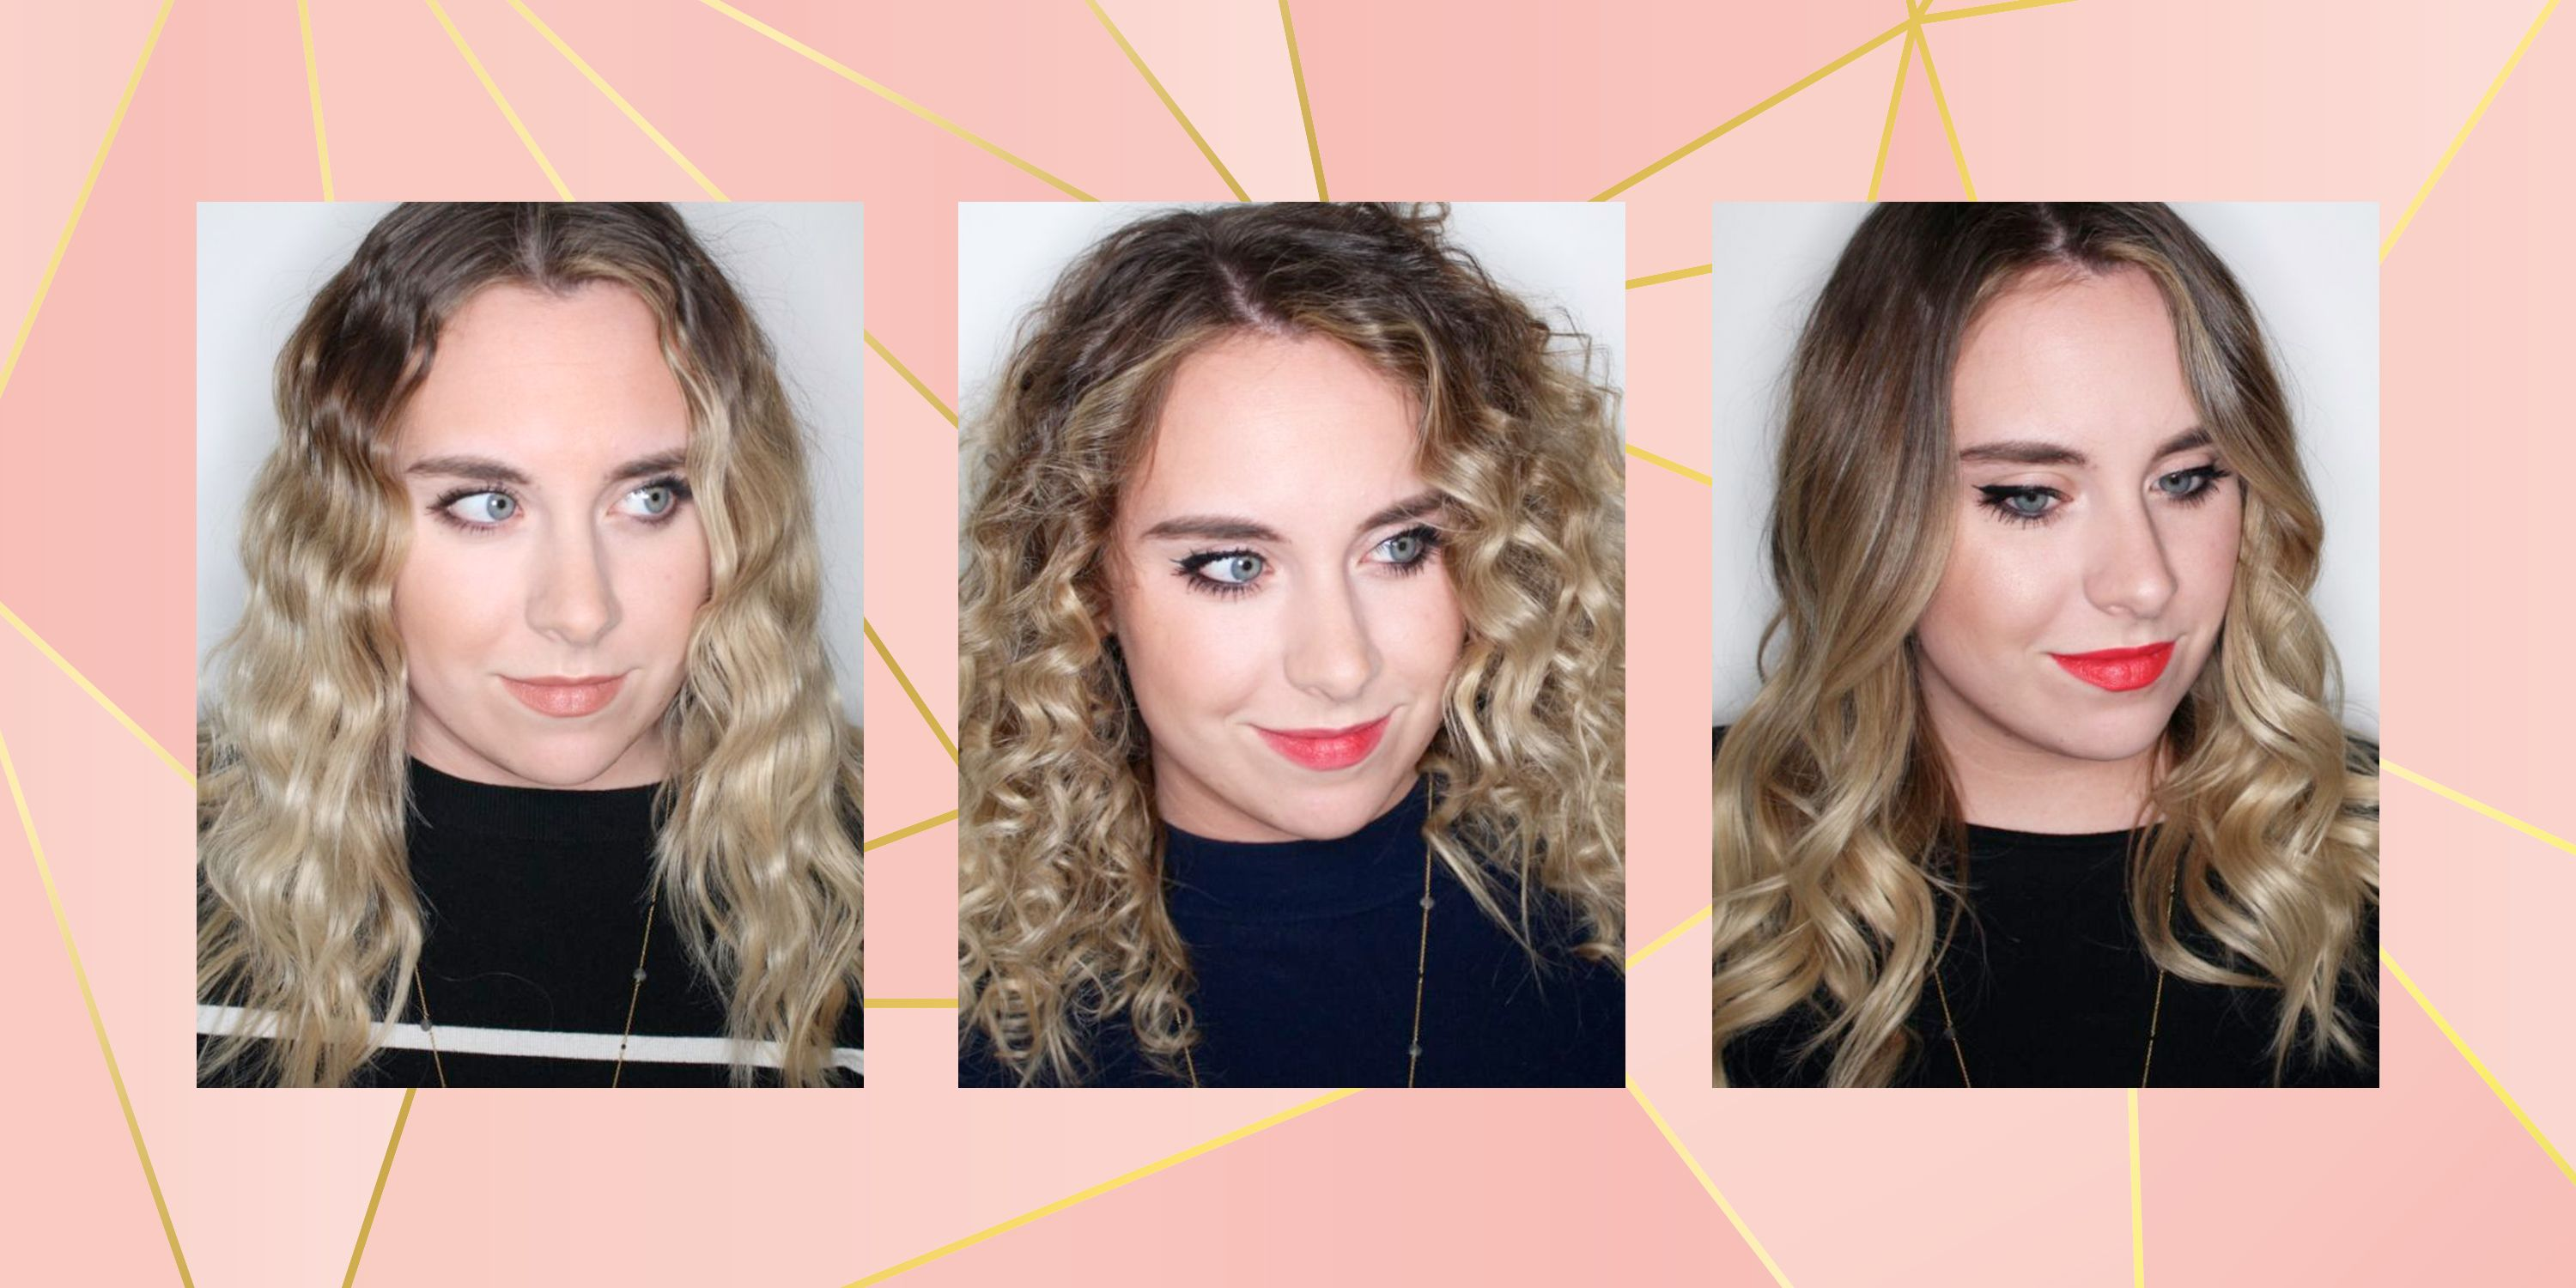 Best curling tongs 2018 - We review the top rated curling wands